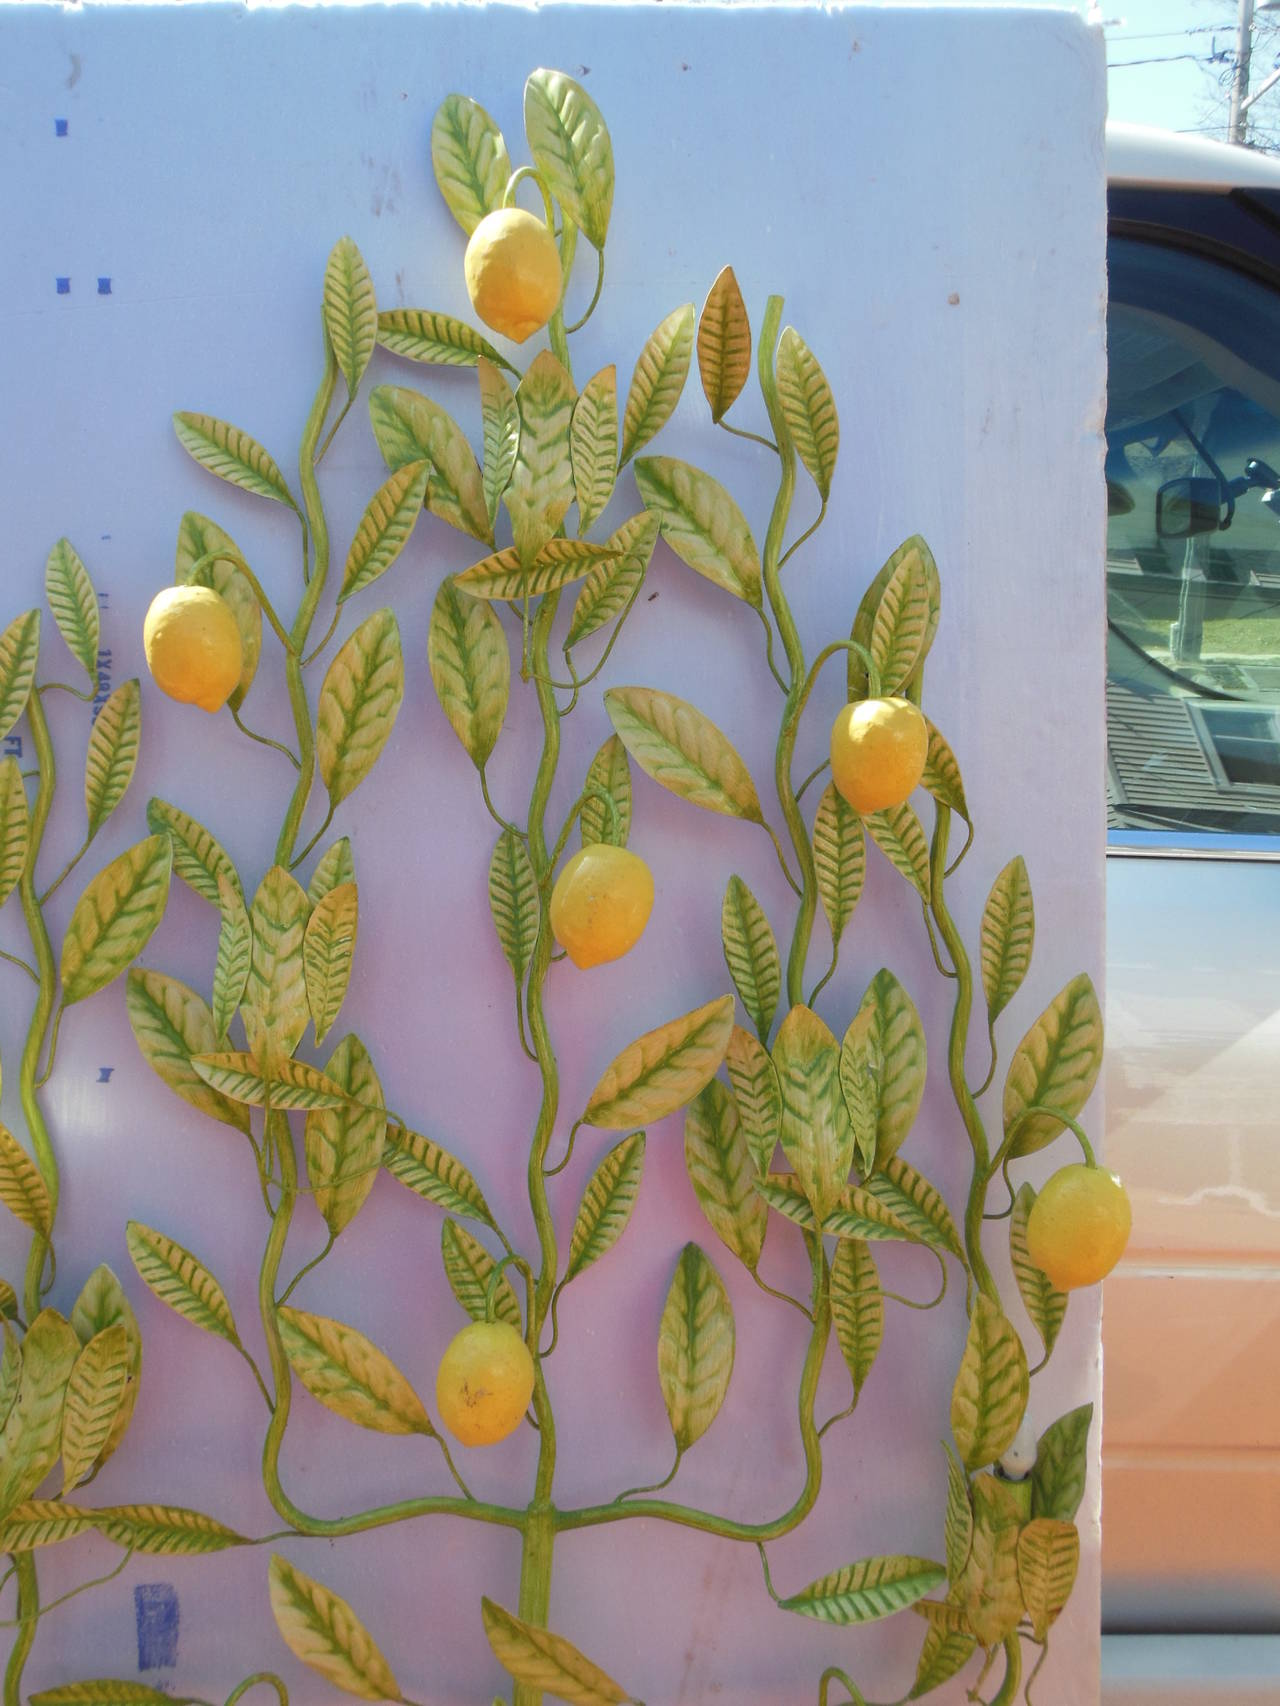 An Italian Tole Lemon Tree with original lights. This tree was much loved as the condition is excellent. Have not had a chance to check the wiring. The Italian Tole trees are becoming hard to find. The Lemon tree will be exhibited at the New York